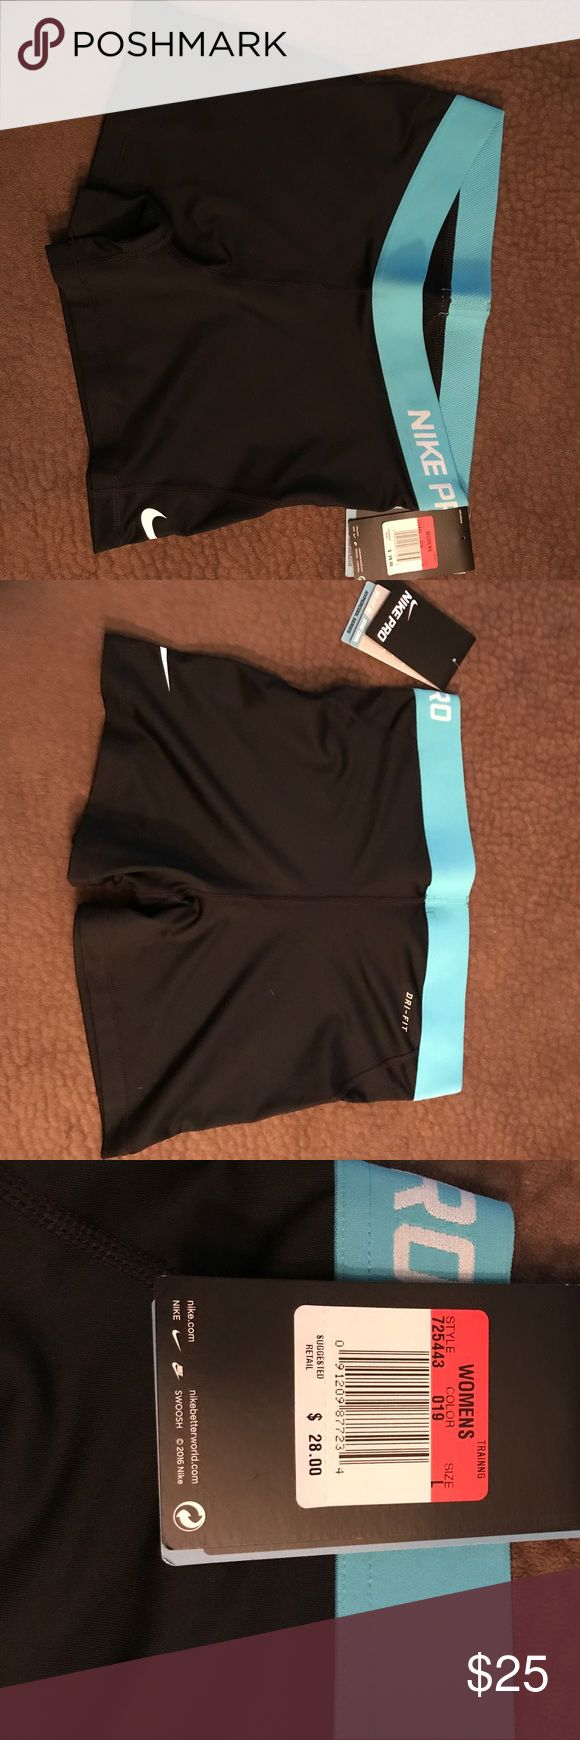 Nike compression shorts Black with blue band. BNWT. Never worn Nike Shorts